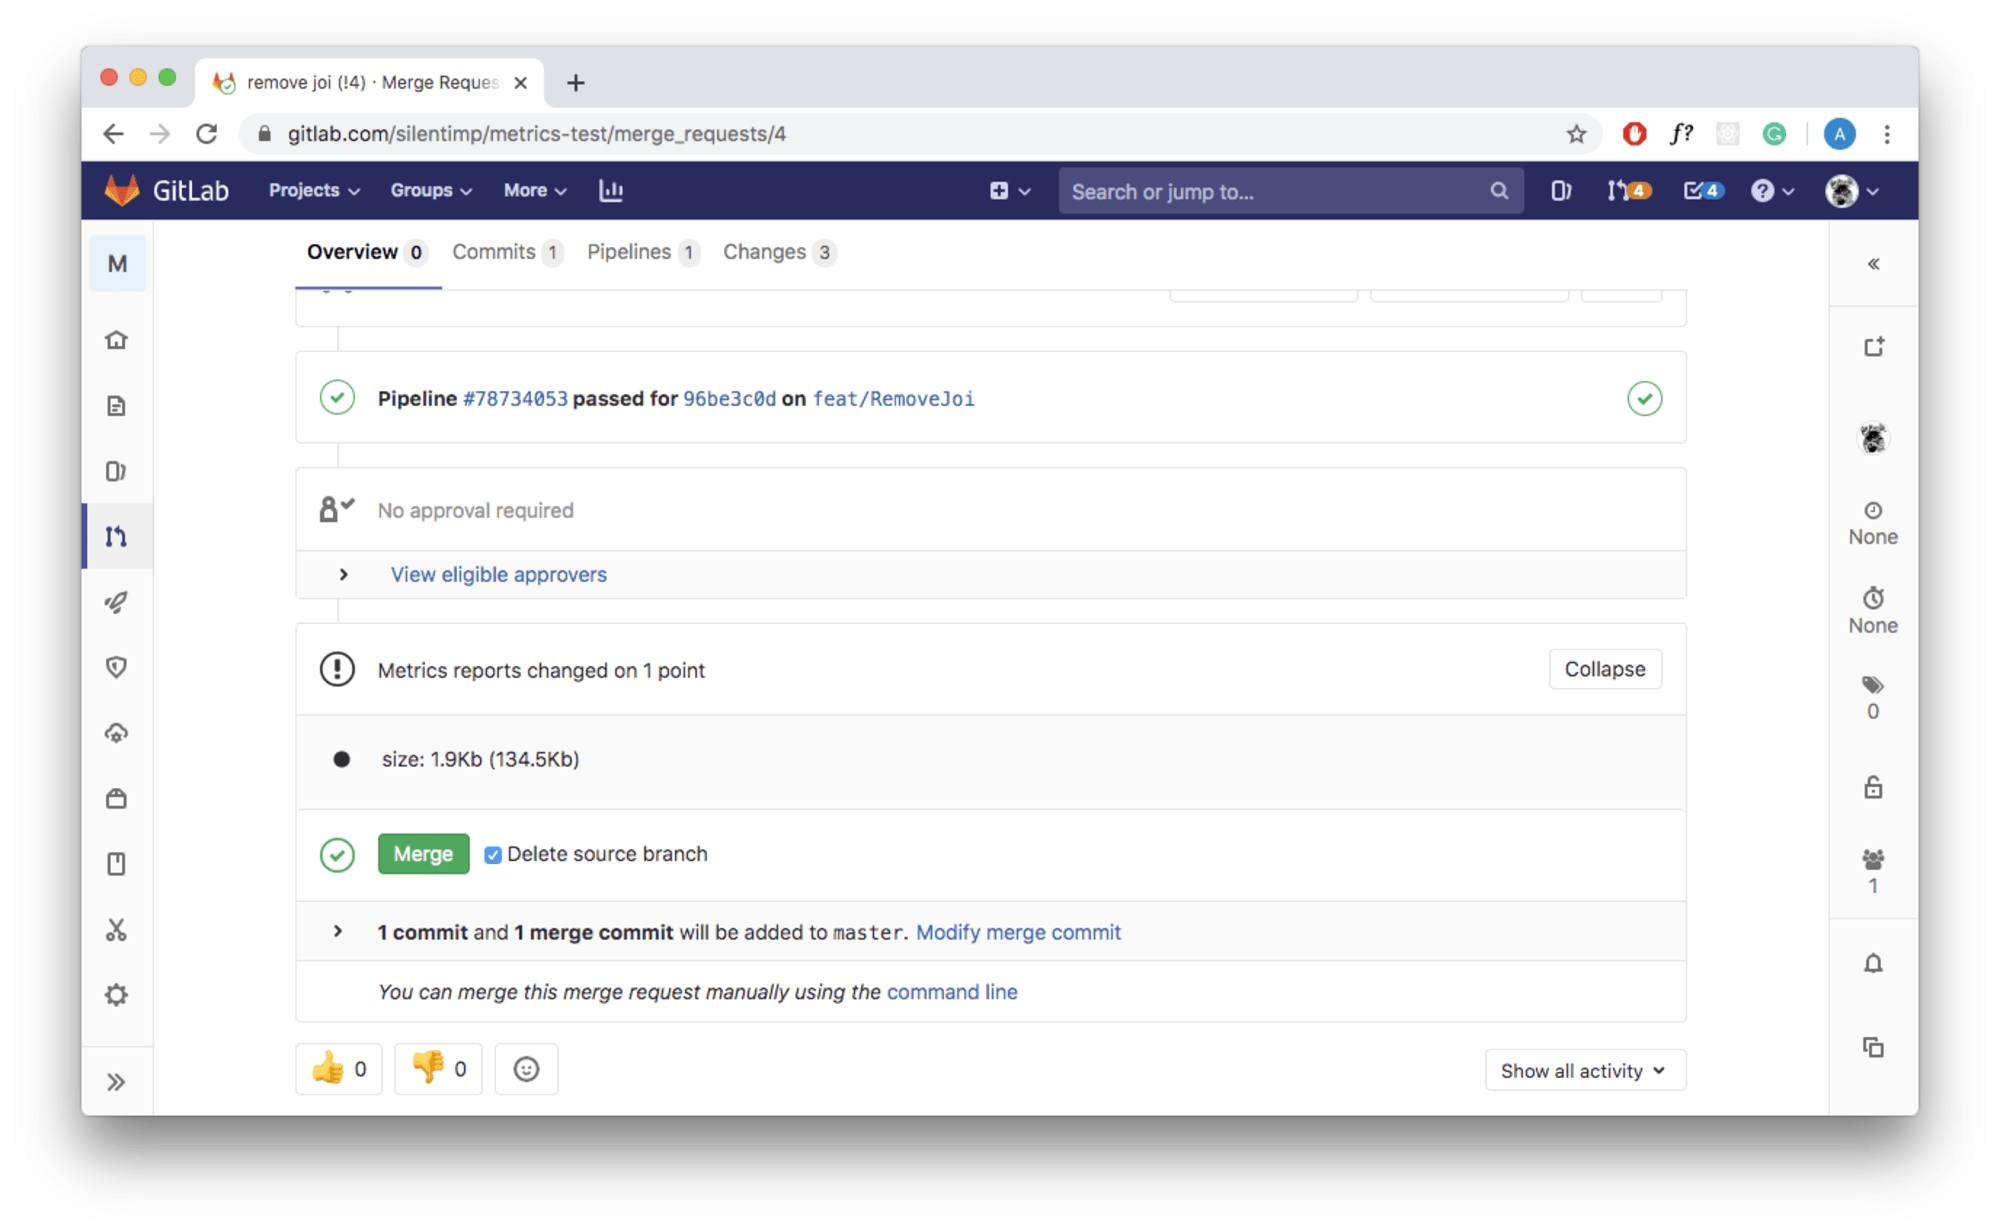 Screenshot with a merge request, which shows us a widget with new and old metric value in the round brackets